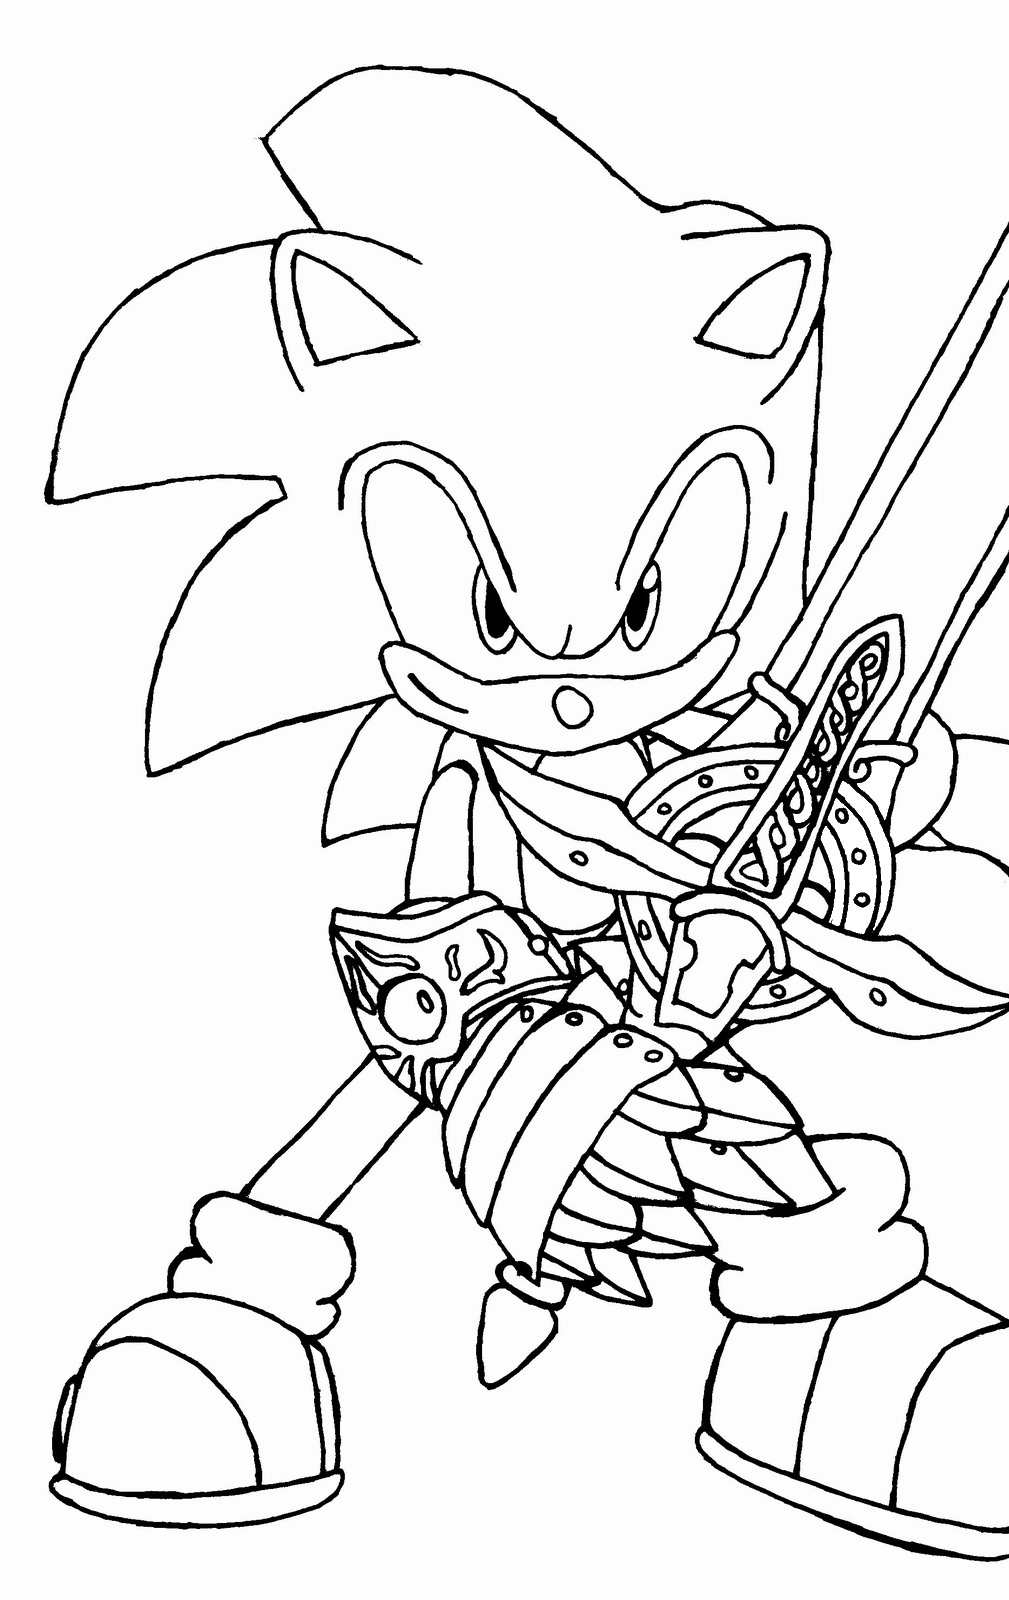 sonic the hedgehog printables sonic the hedgehog coloring pages to download and print the sonic hedgehog printables 1 1